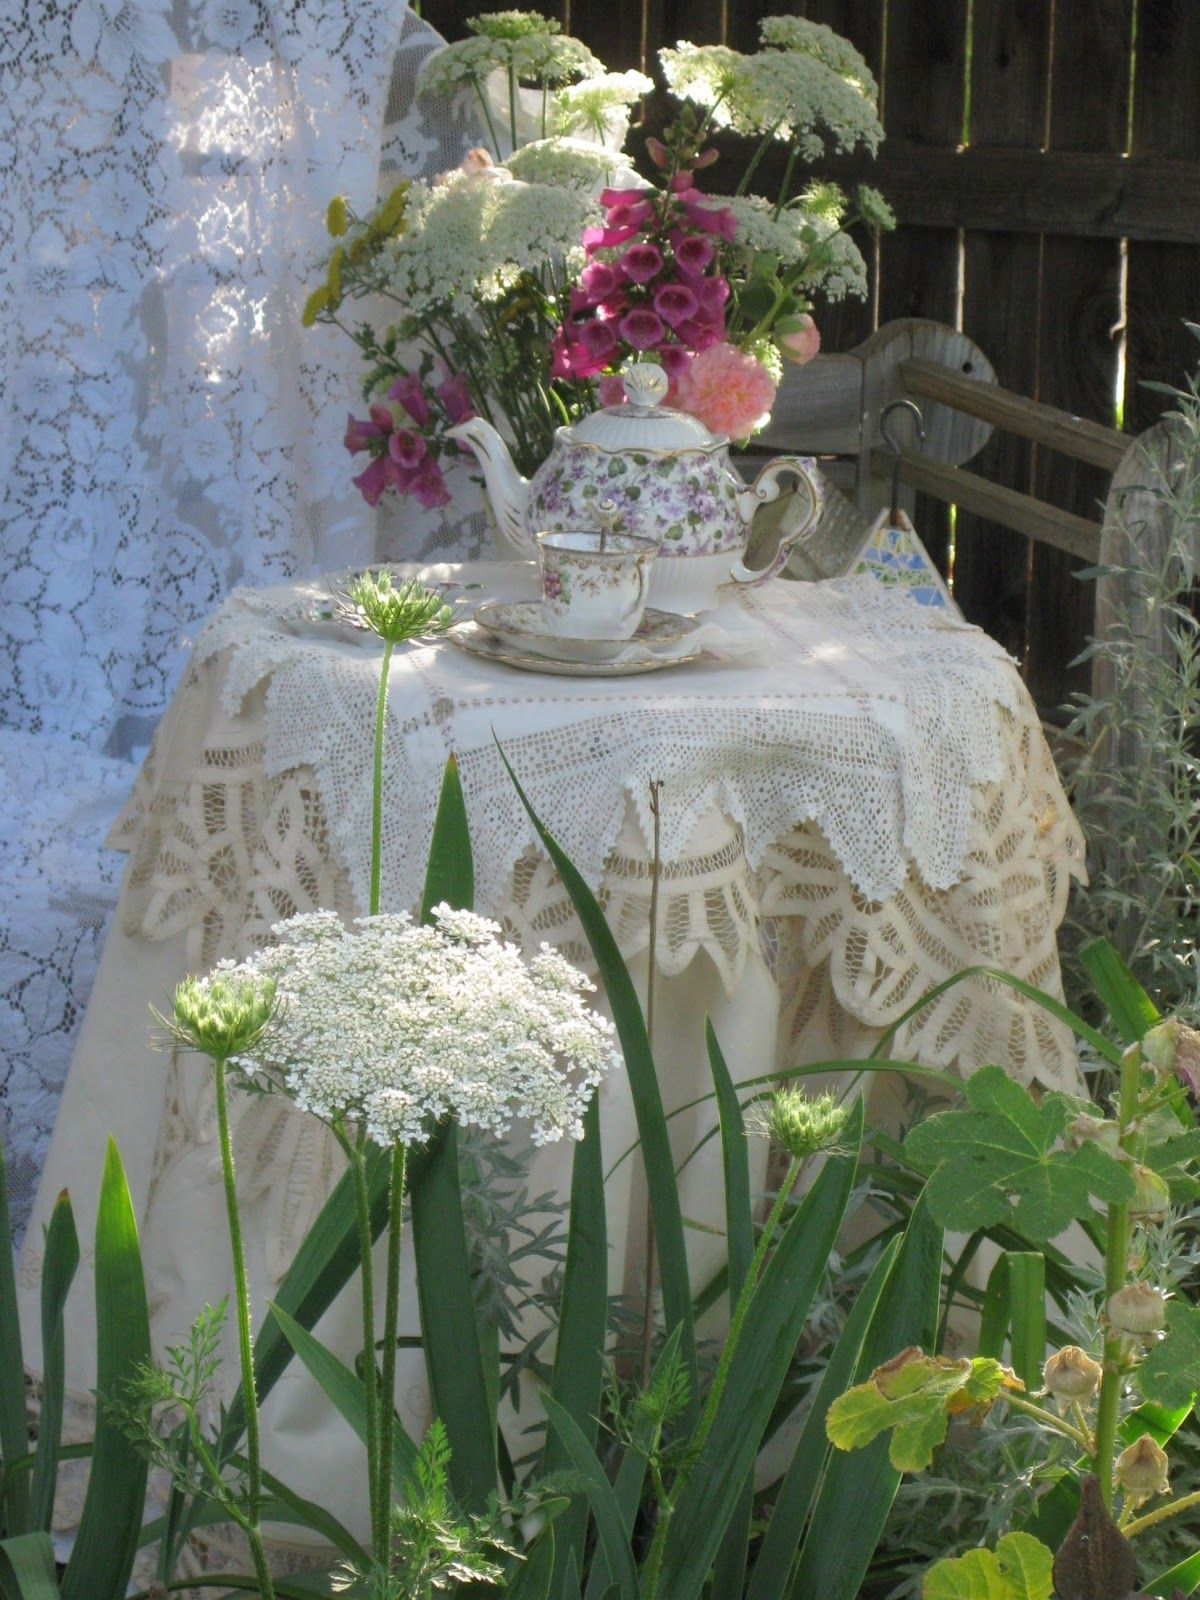 Lace and tea...romantic idea in the garden, garden idea, idée pour le jardin, ideo por la ĝardenon, Идея для сада,Idee für den Garten